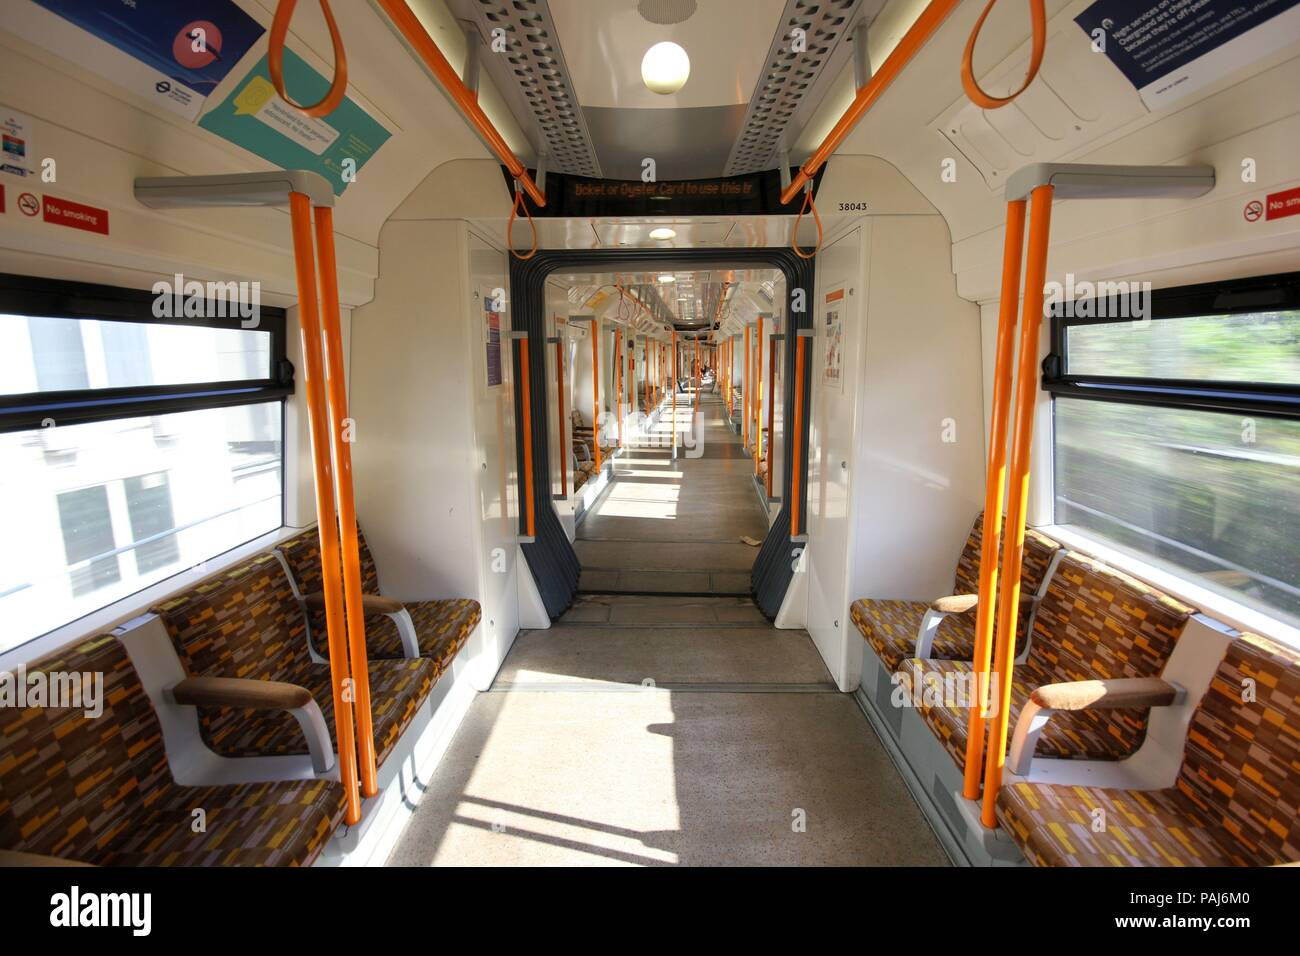 Empty train during Heatwave in London - Stock Image